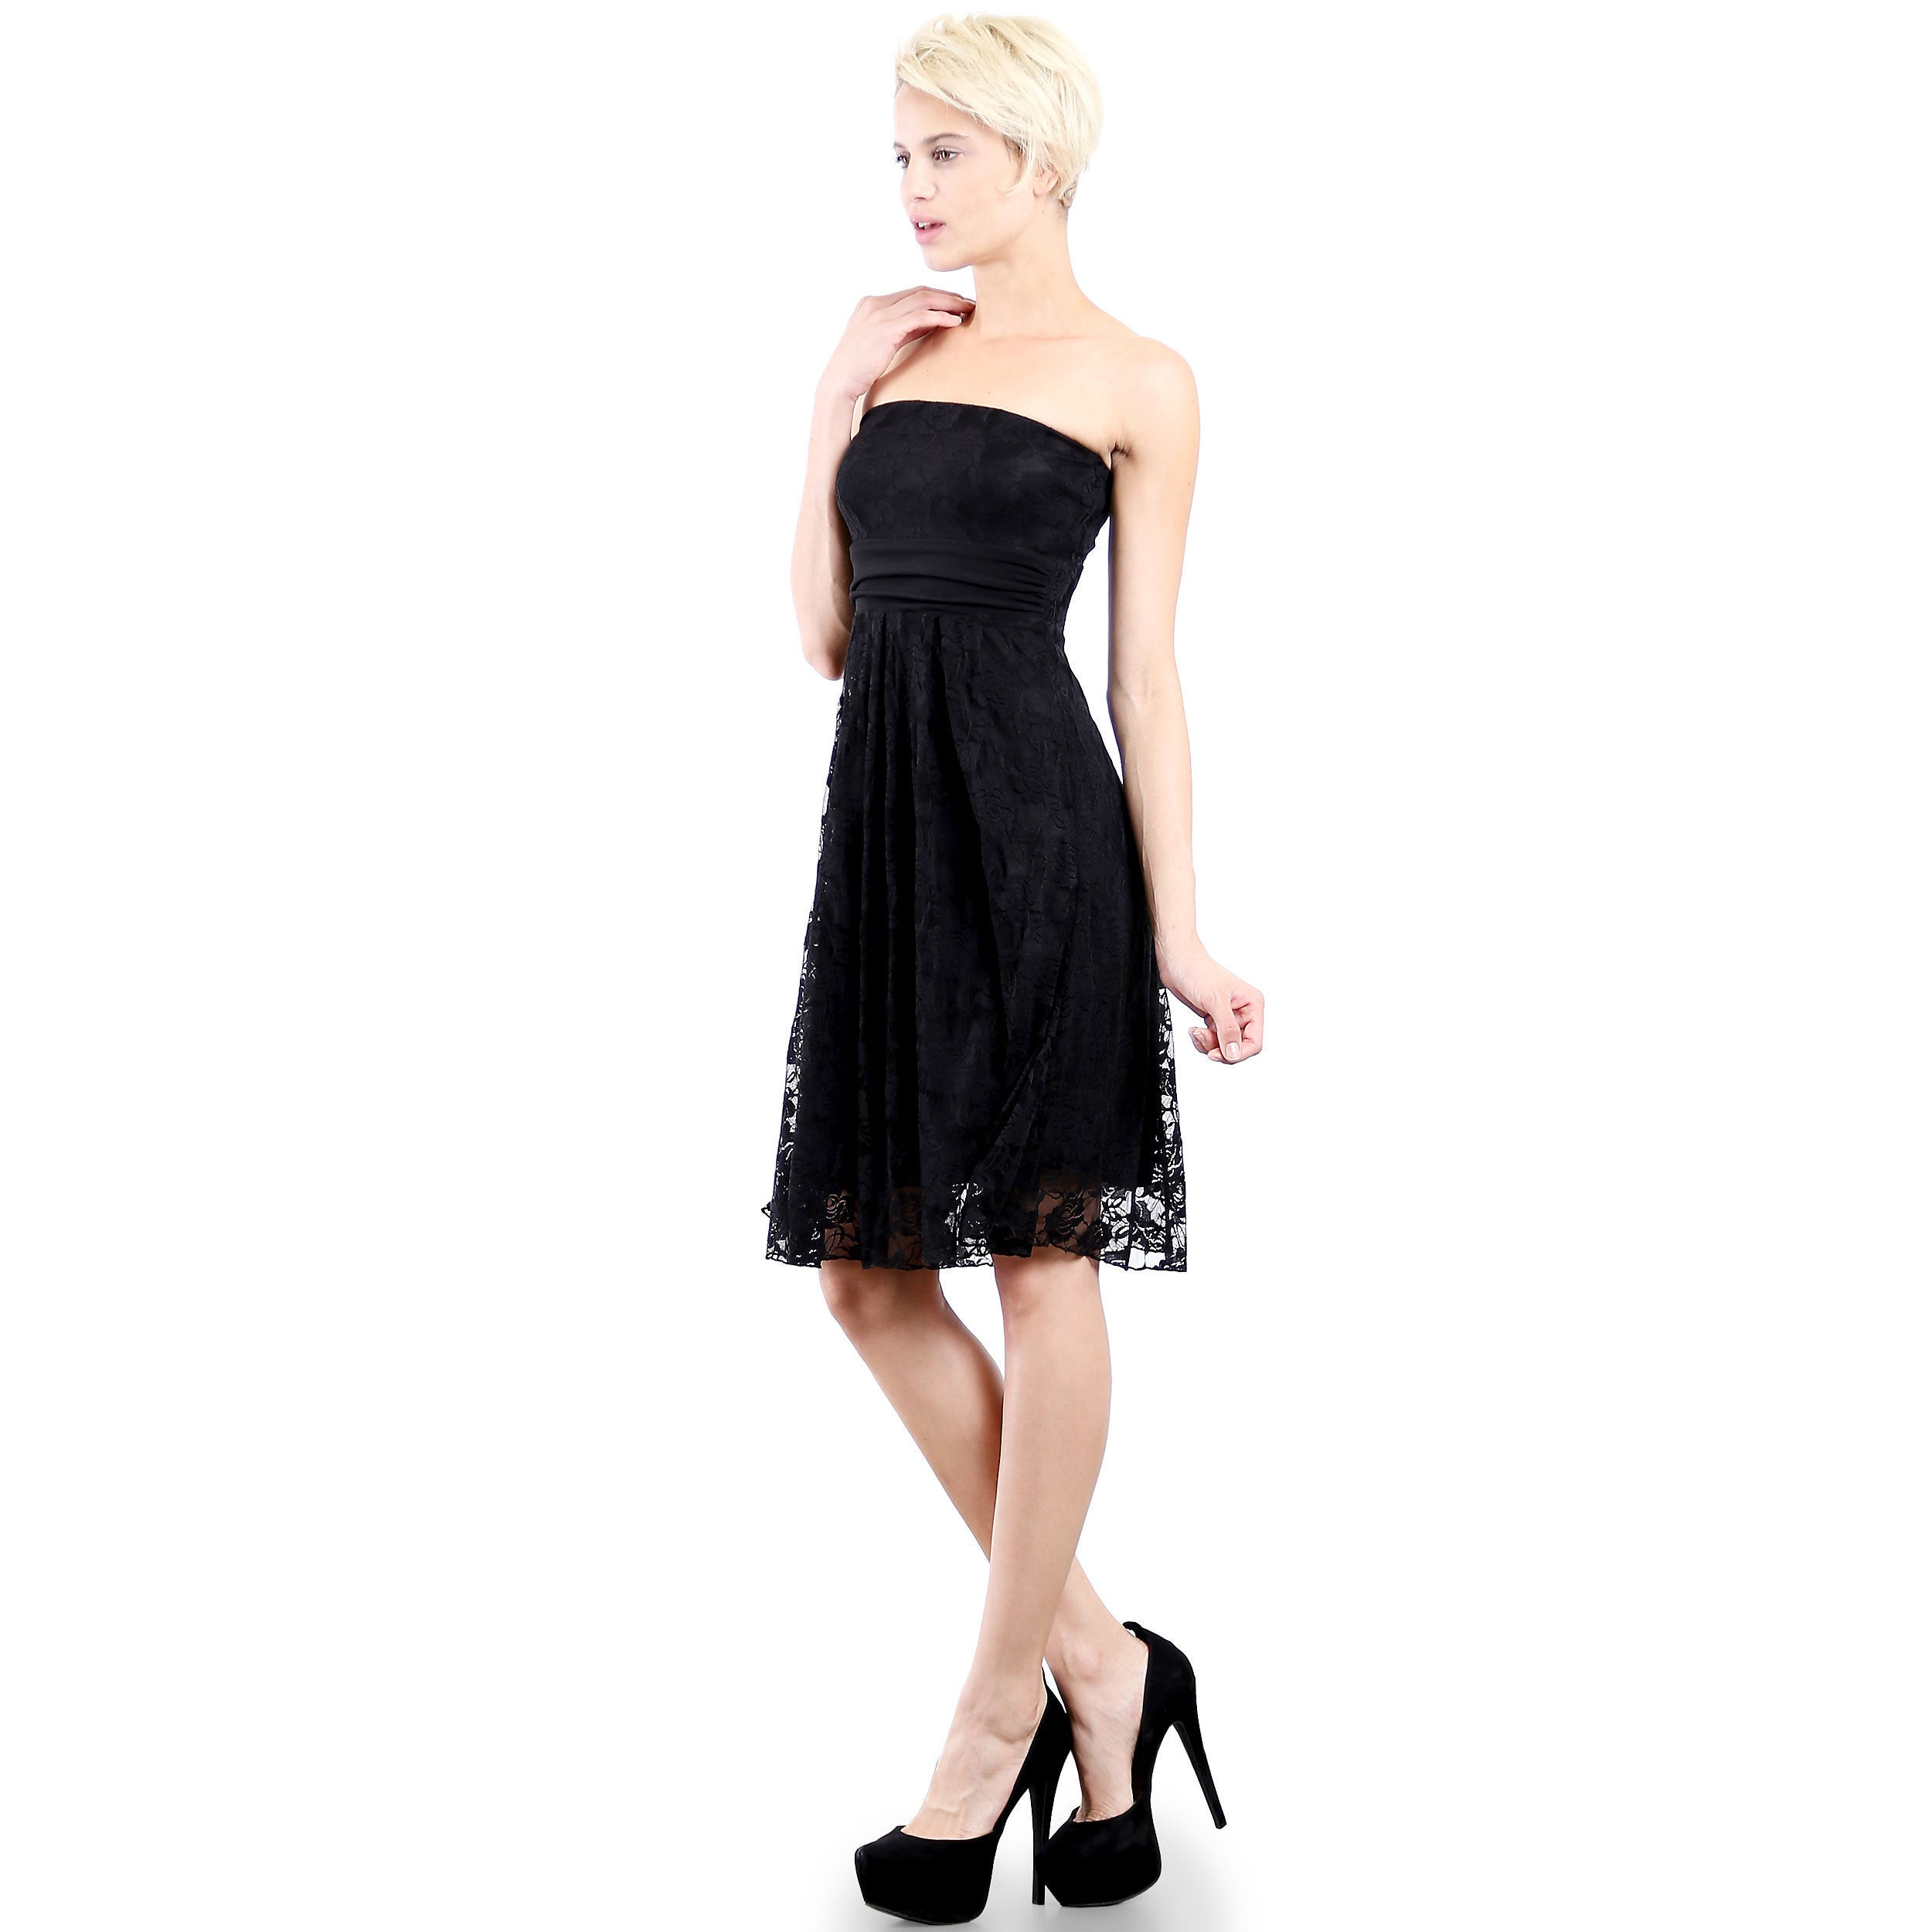 f88843b55e Shop Evanese Women s Black Polyester Lace Strapless Tube Cocktail Party  Dress - Free Shipping Today - Overstock - 12958663